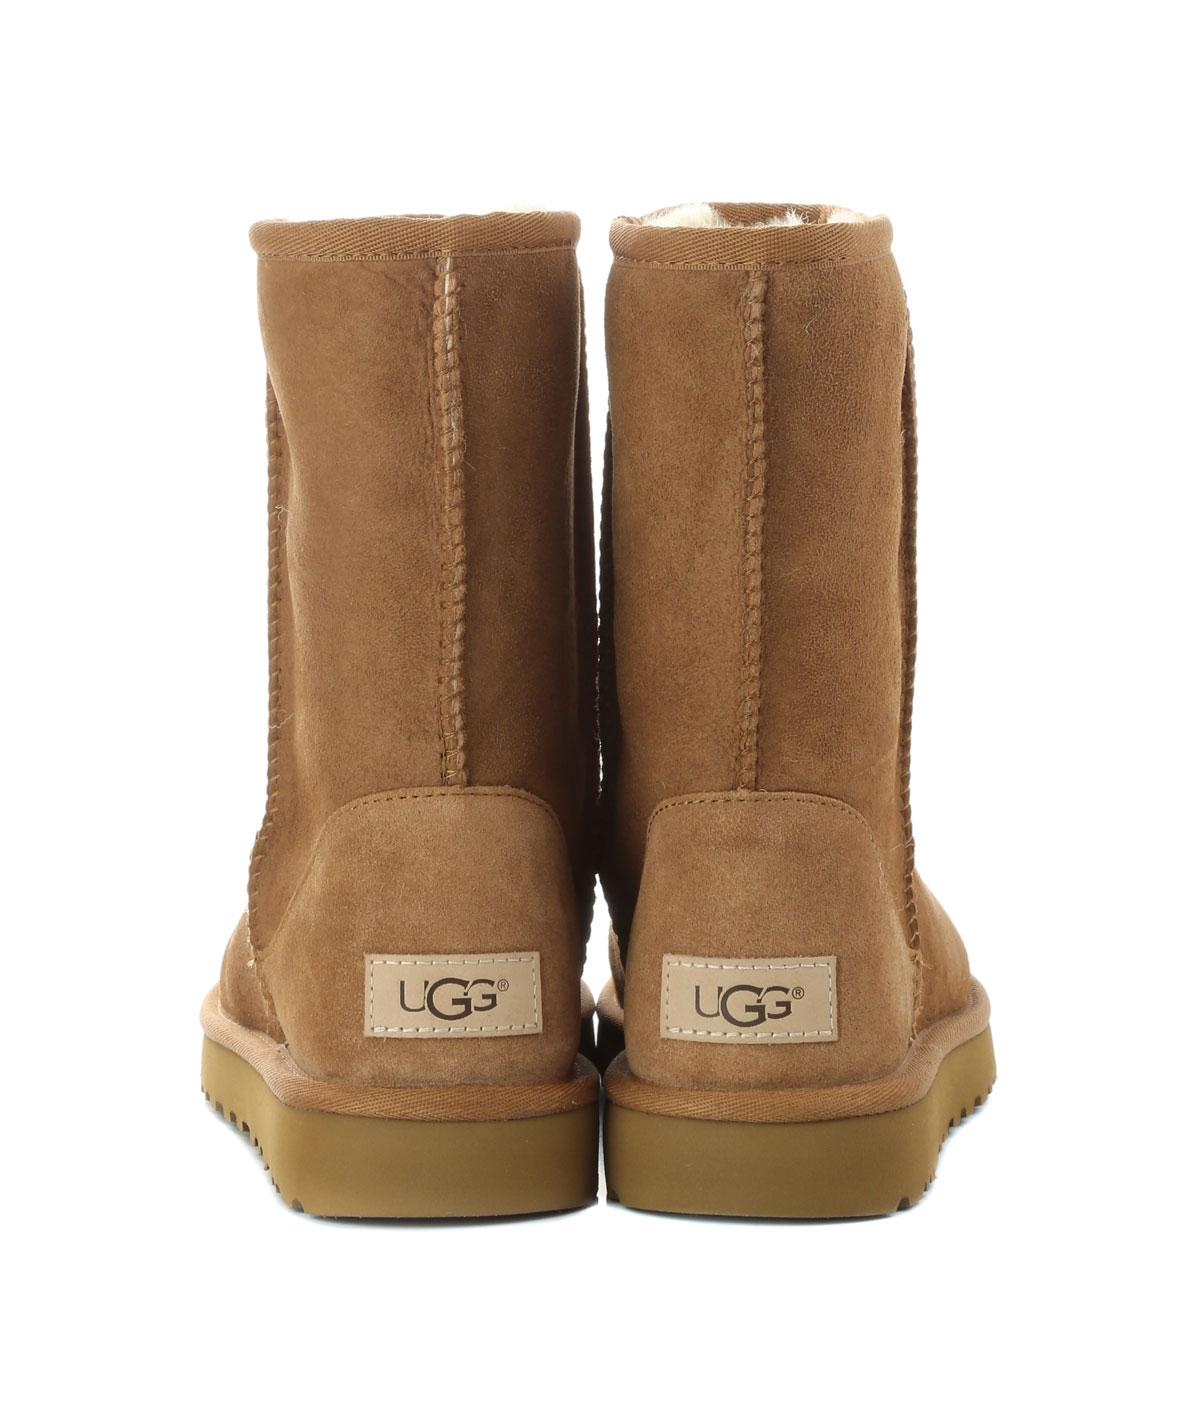 ugg boots rubber sole